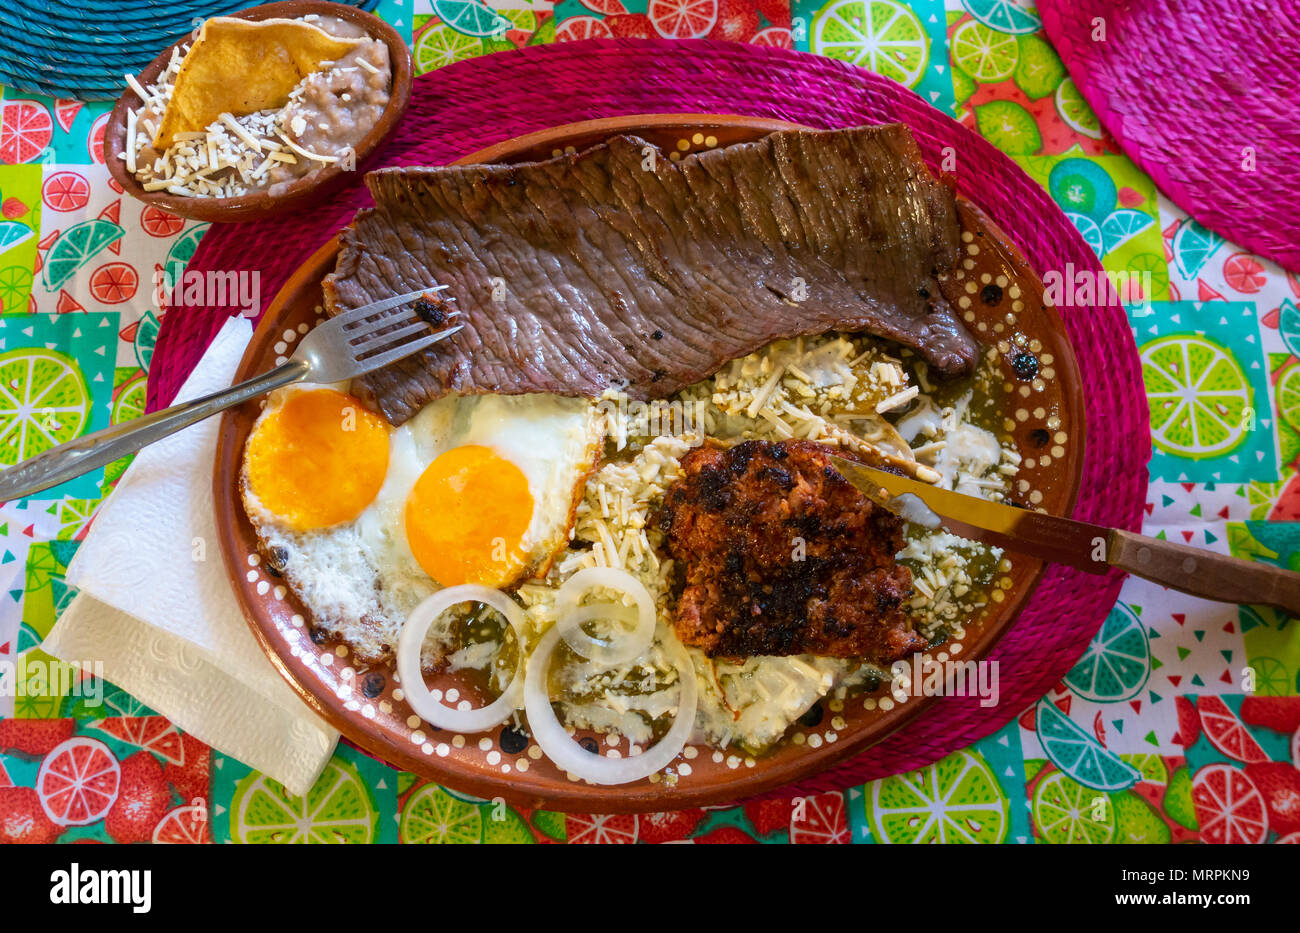 A full Mexican breakfast, with steak, sausage, eggs, beans, cheese, tortillas and a green sauce. - Stock Image